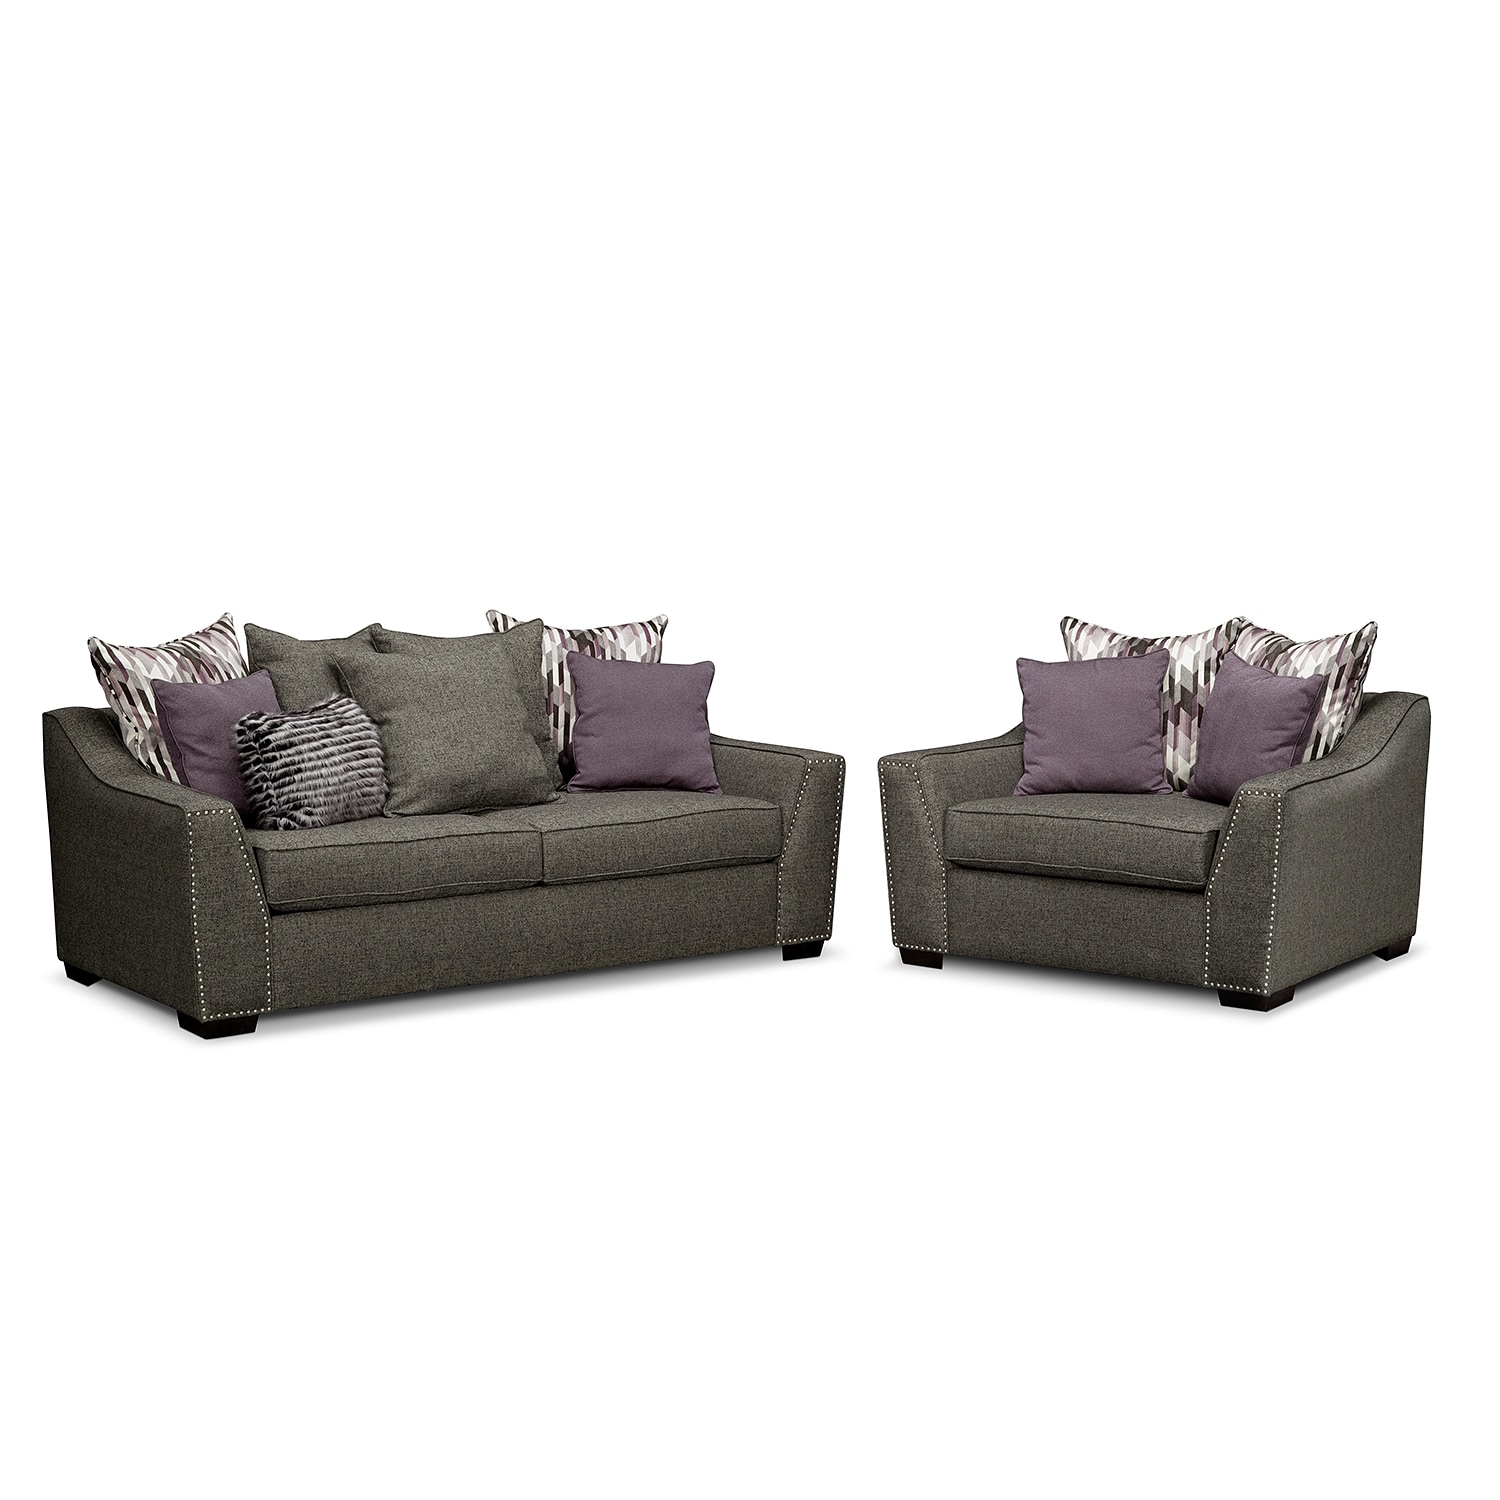 Living Room Furniture - Ritz 2 Pc. Living Room w/Chair and a Half